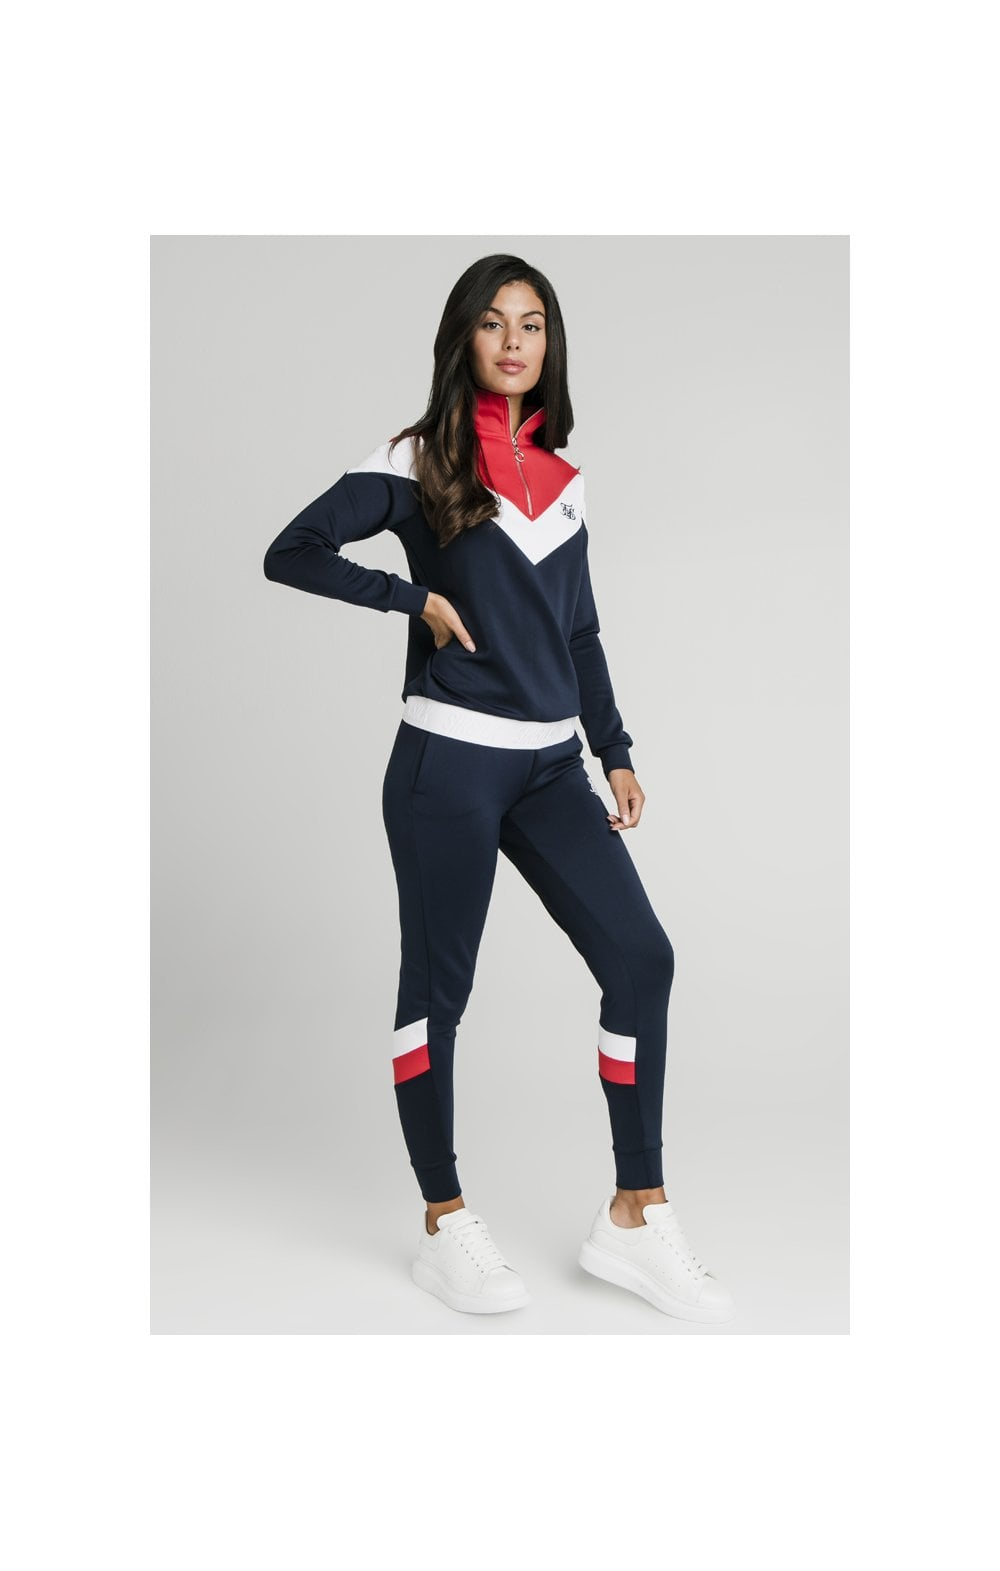 SikSilk Retro Sport Track Top - Navy, Red & White (3)